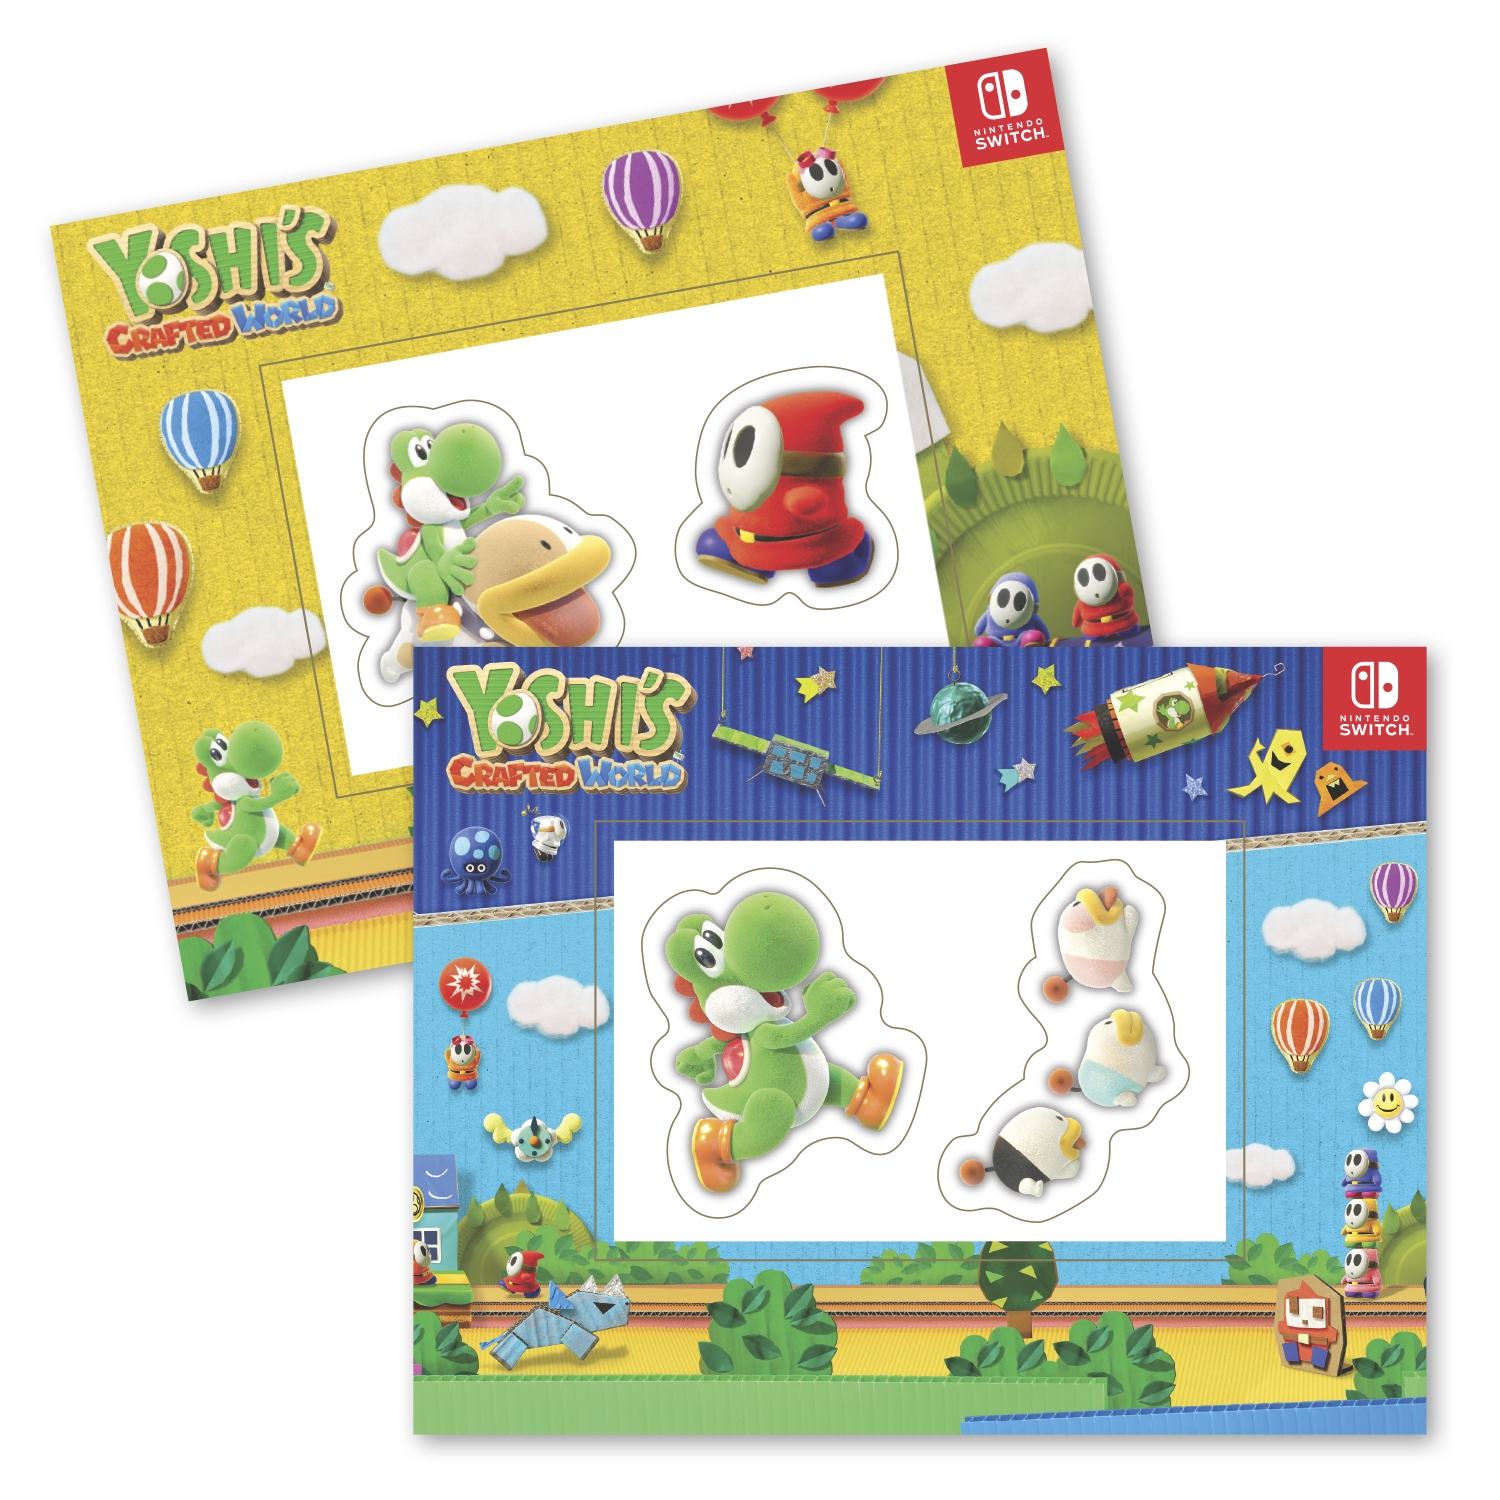 """• PFCST Custom Picture Frame Magnet, 5.25: x 6.75"""", .034 thickness  • Nintendo/Yoshi project for 26,800 sets. Magnets were inserted into cello bag for retail packaging with bar code sticker attached."""